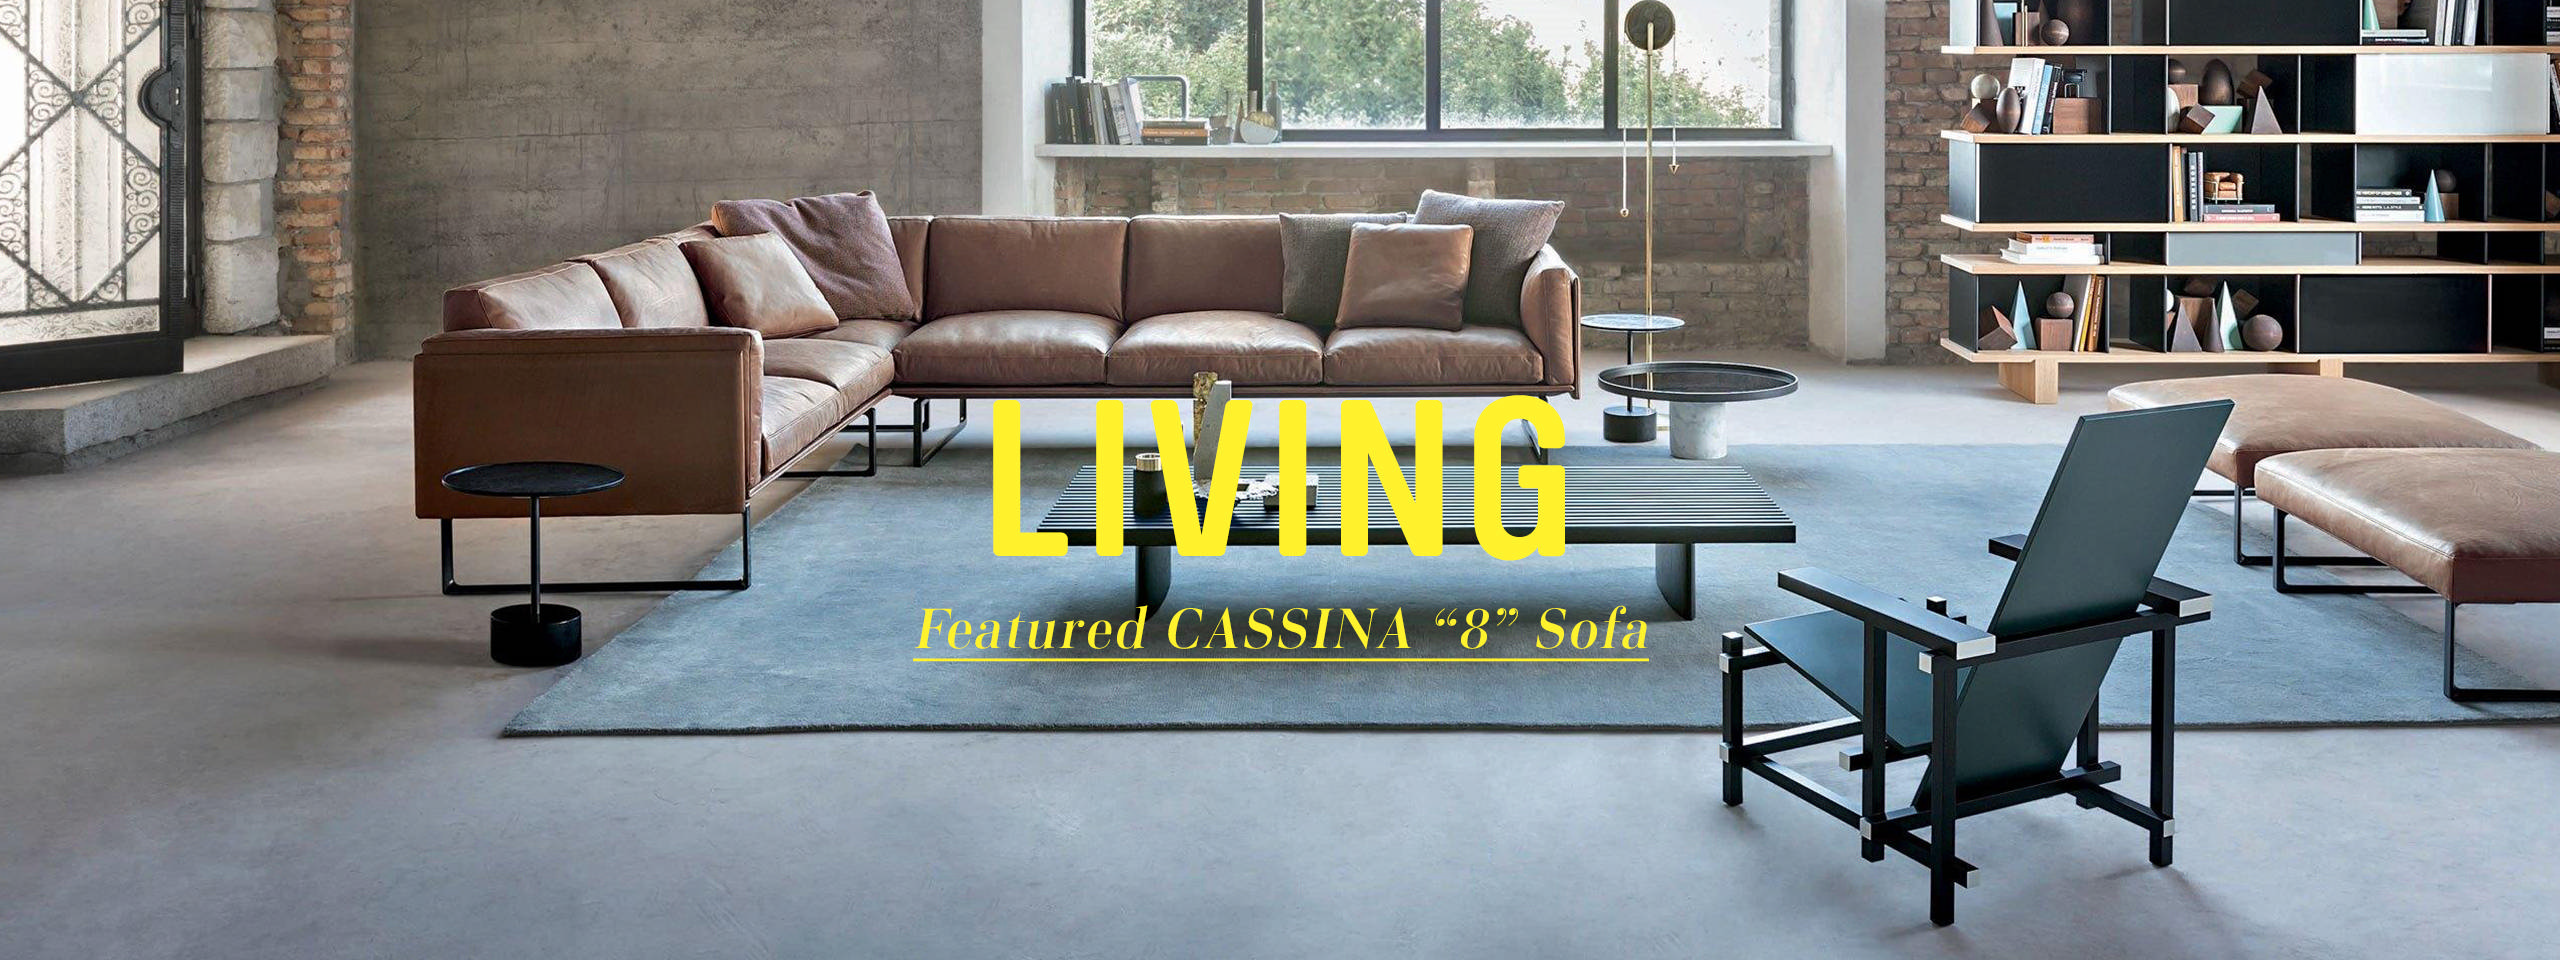 living room furniture sofa chair wall tiles for designer sofas chairs tables space create a place to relax in your with the right